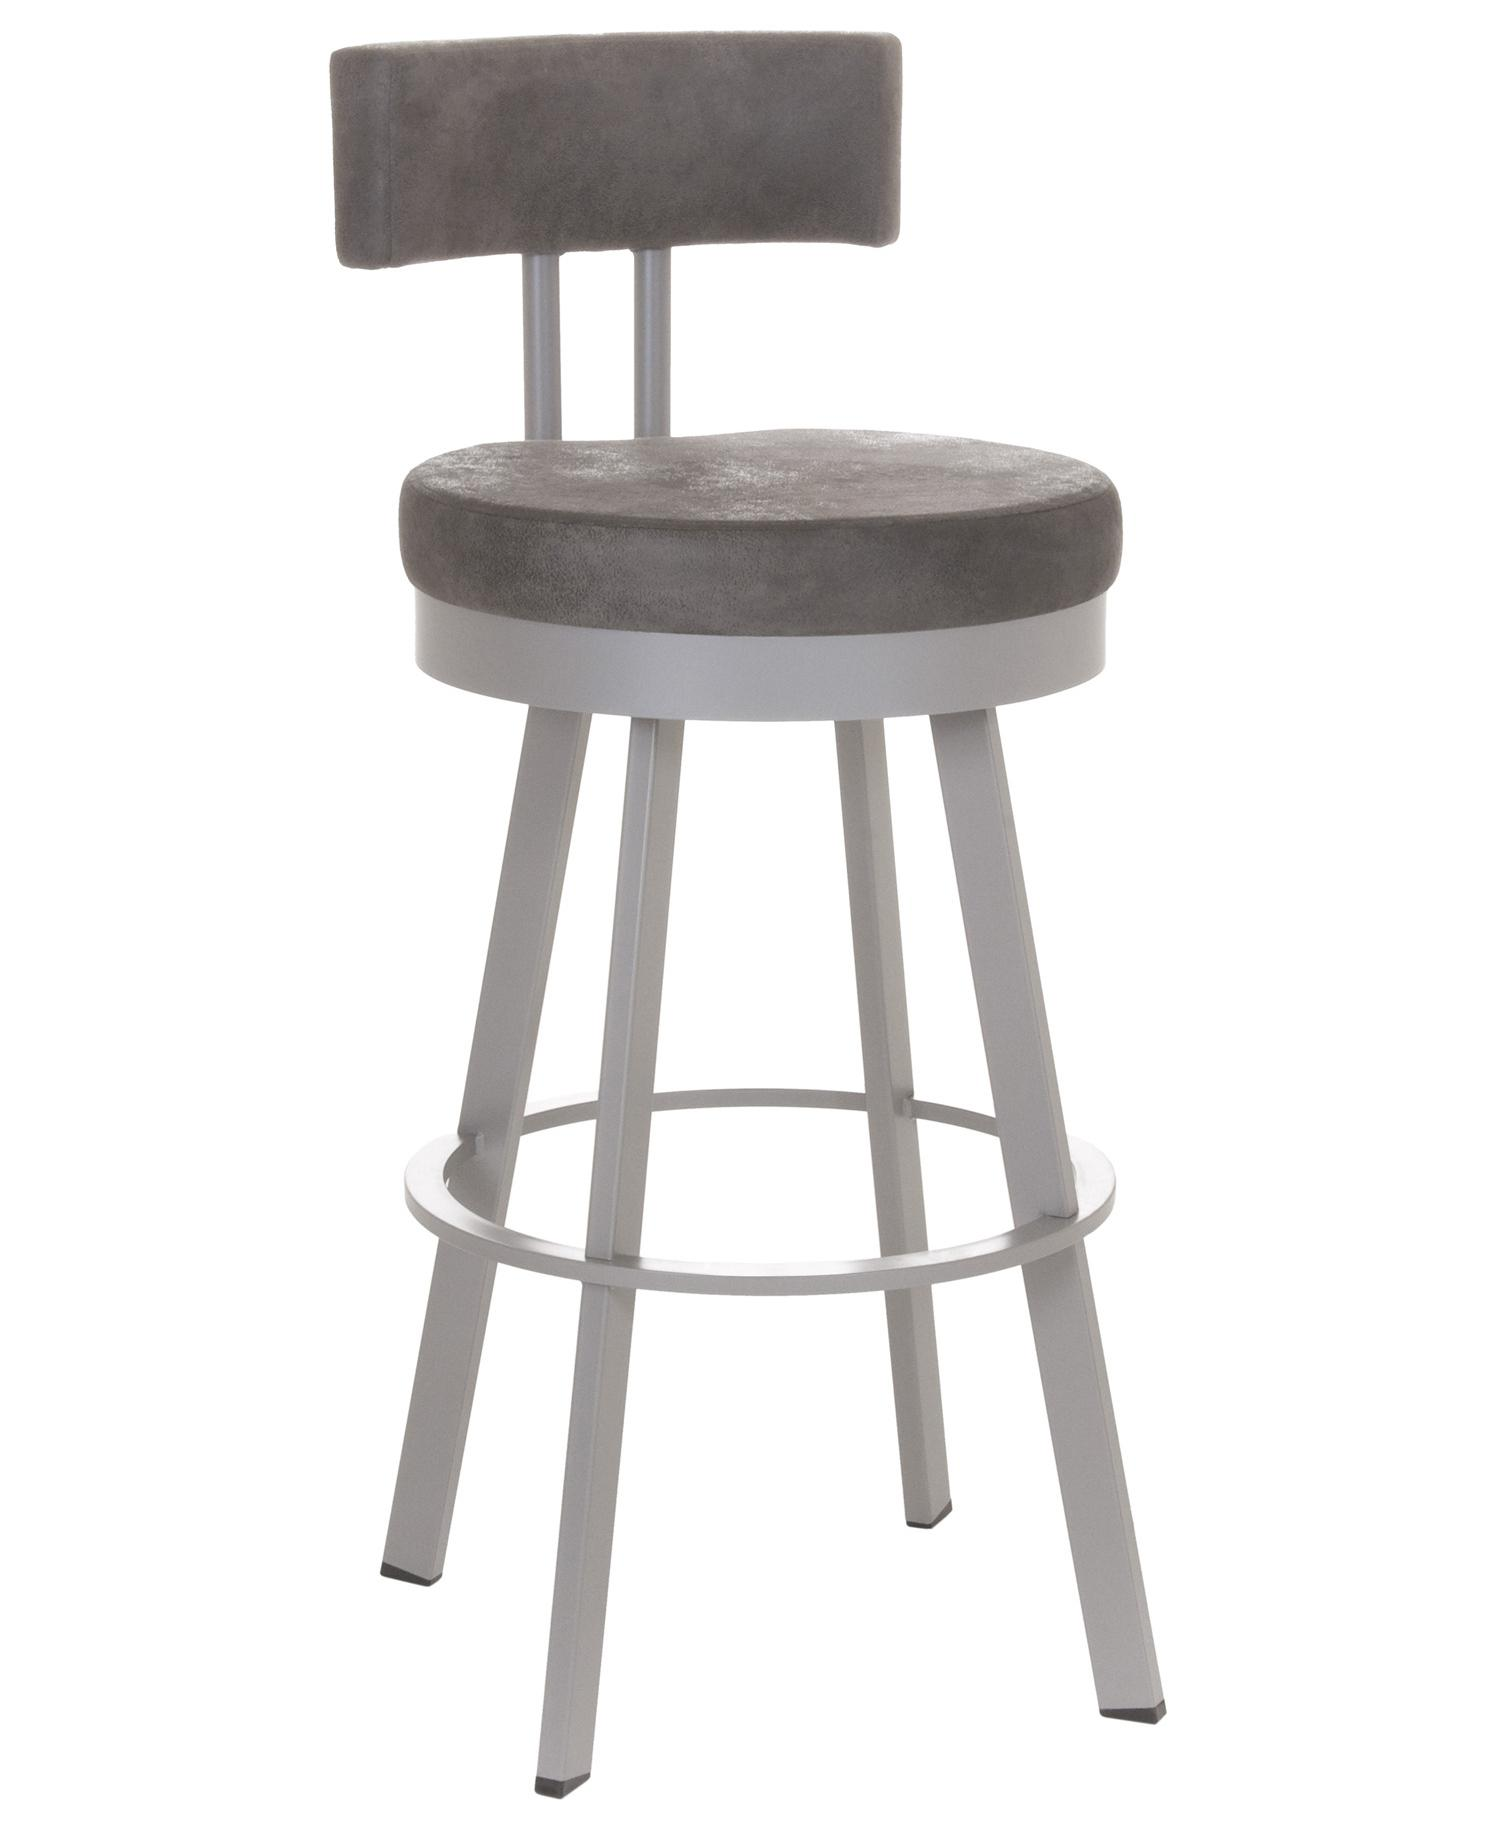 Urban Spectator Height Barry Swivel Stool by Amisco at SuperStore